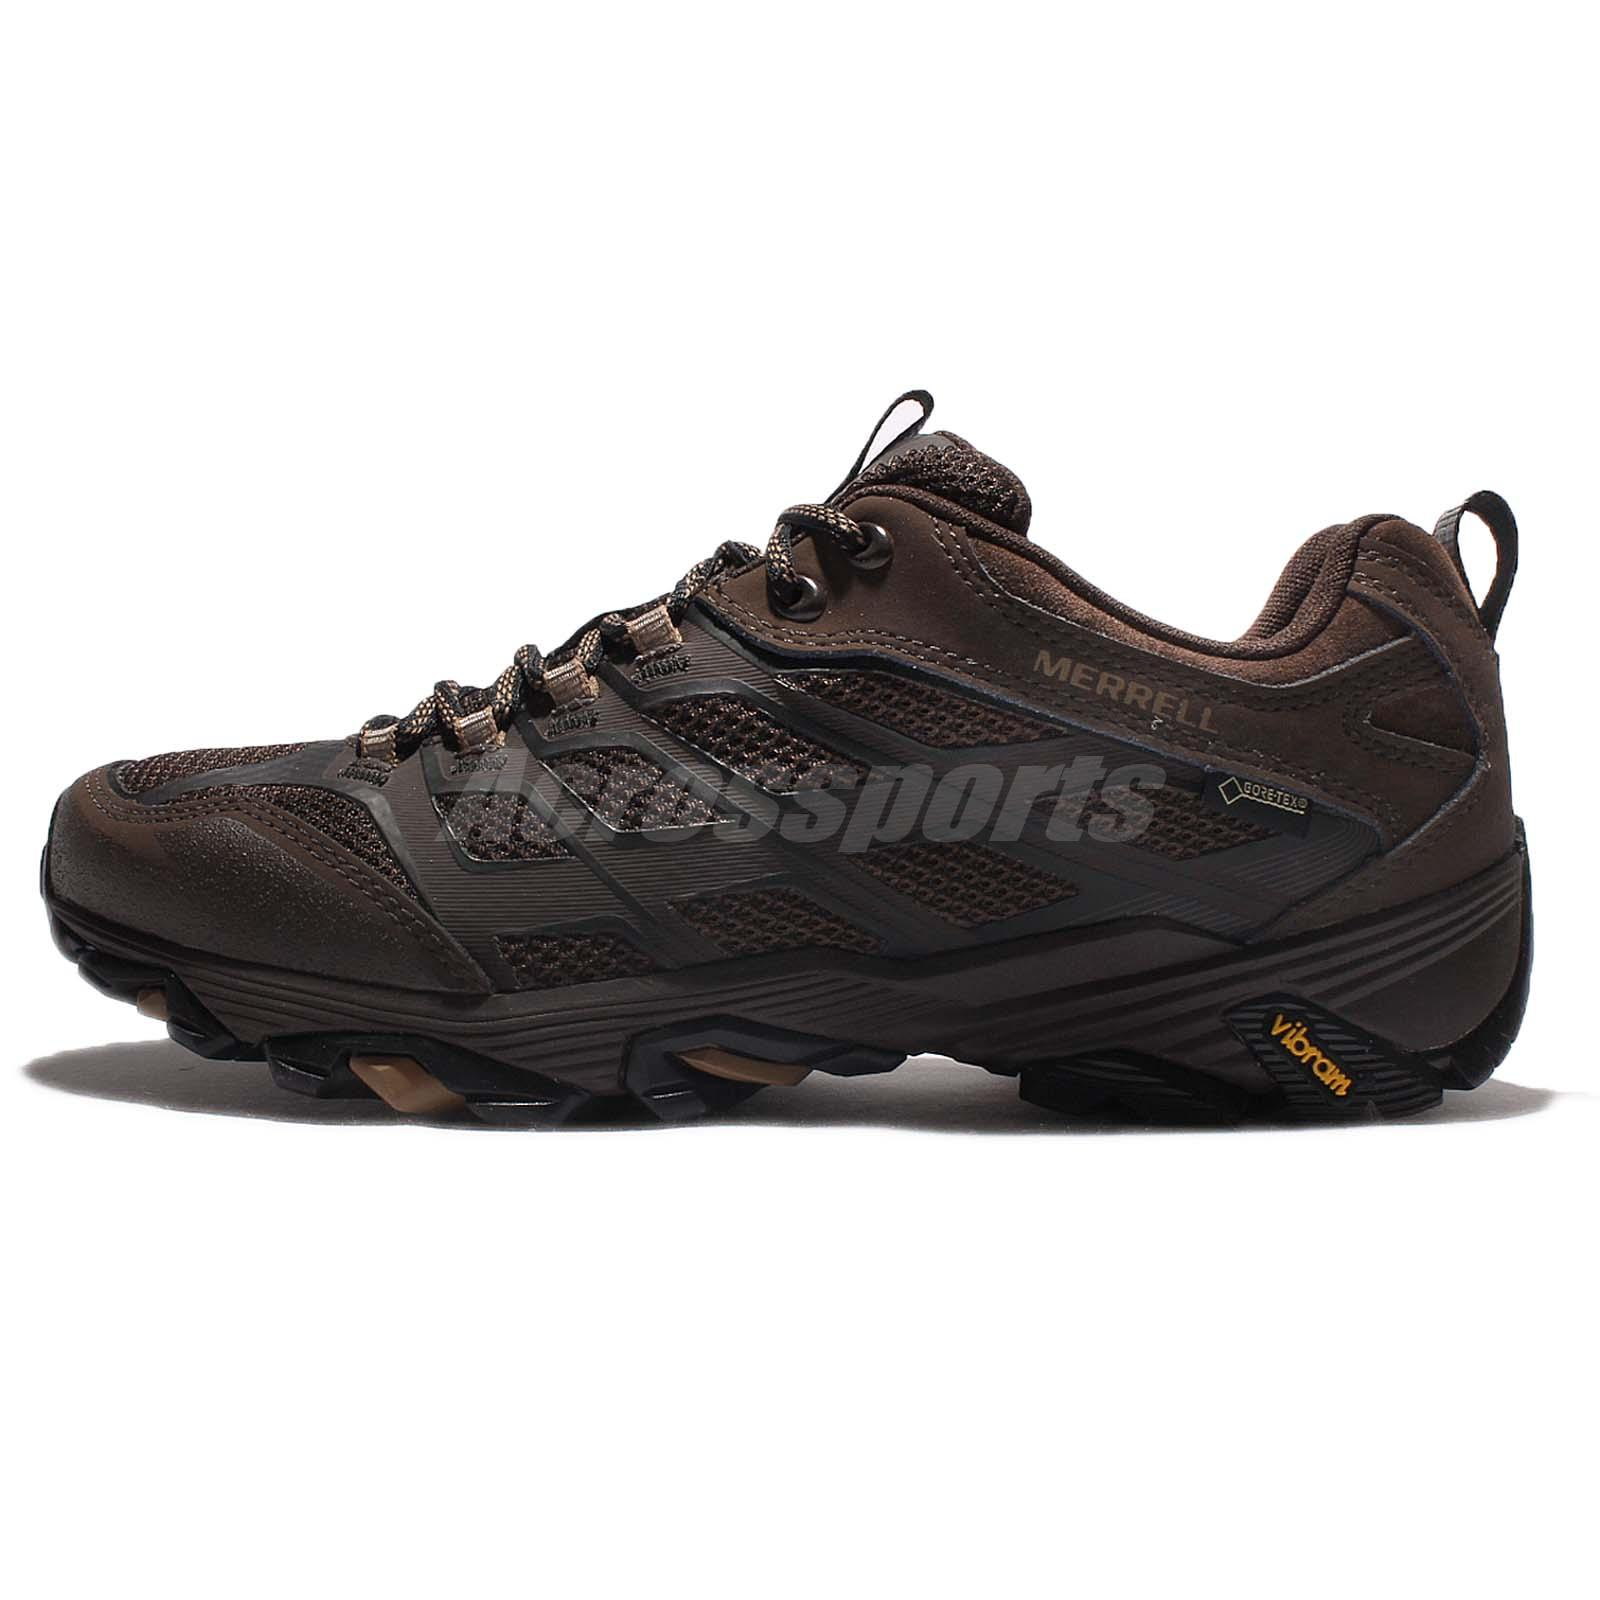 a07b94fcde Merrell Moab FST Gore-Tex Brown Black Vibram Men Outdoors Hiking Shoes  ML36983